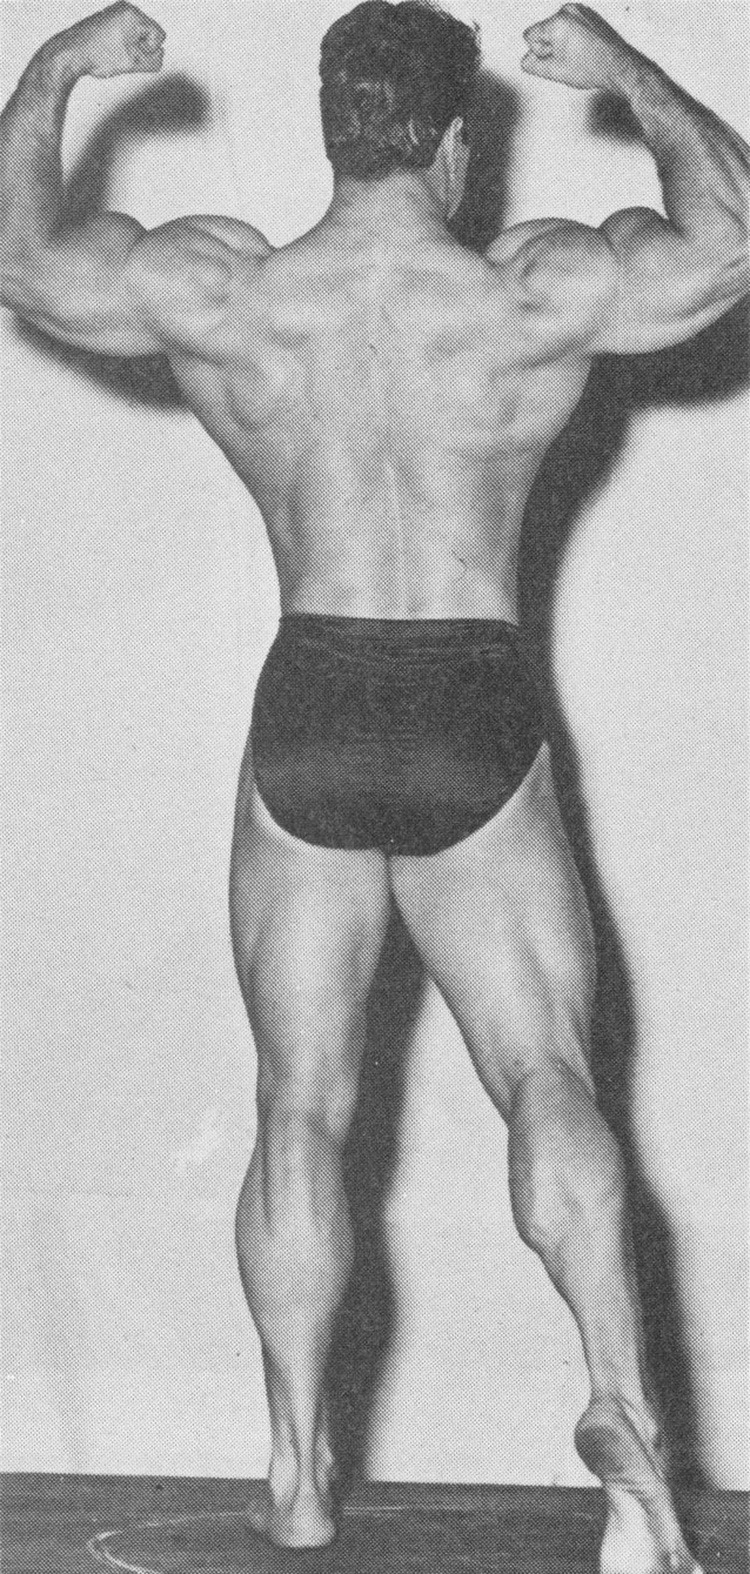 Reg Park Age Height Weight Images Bio